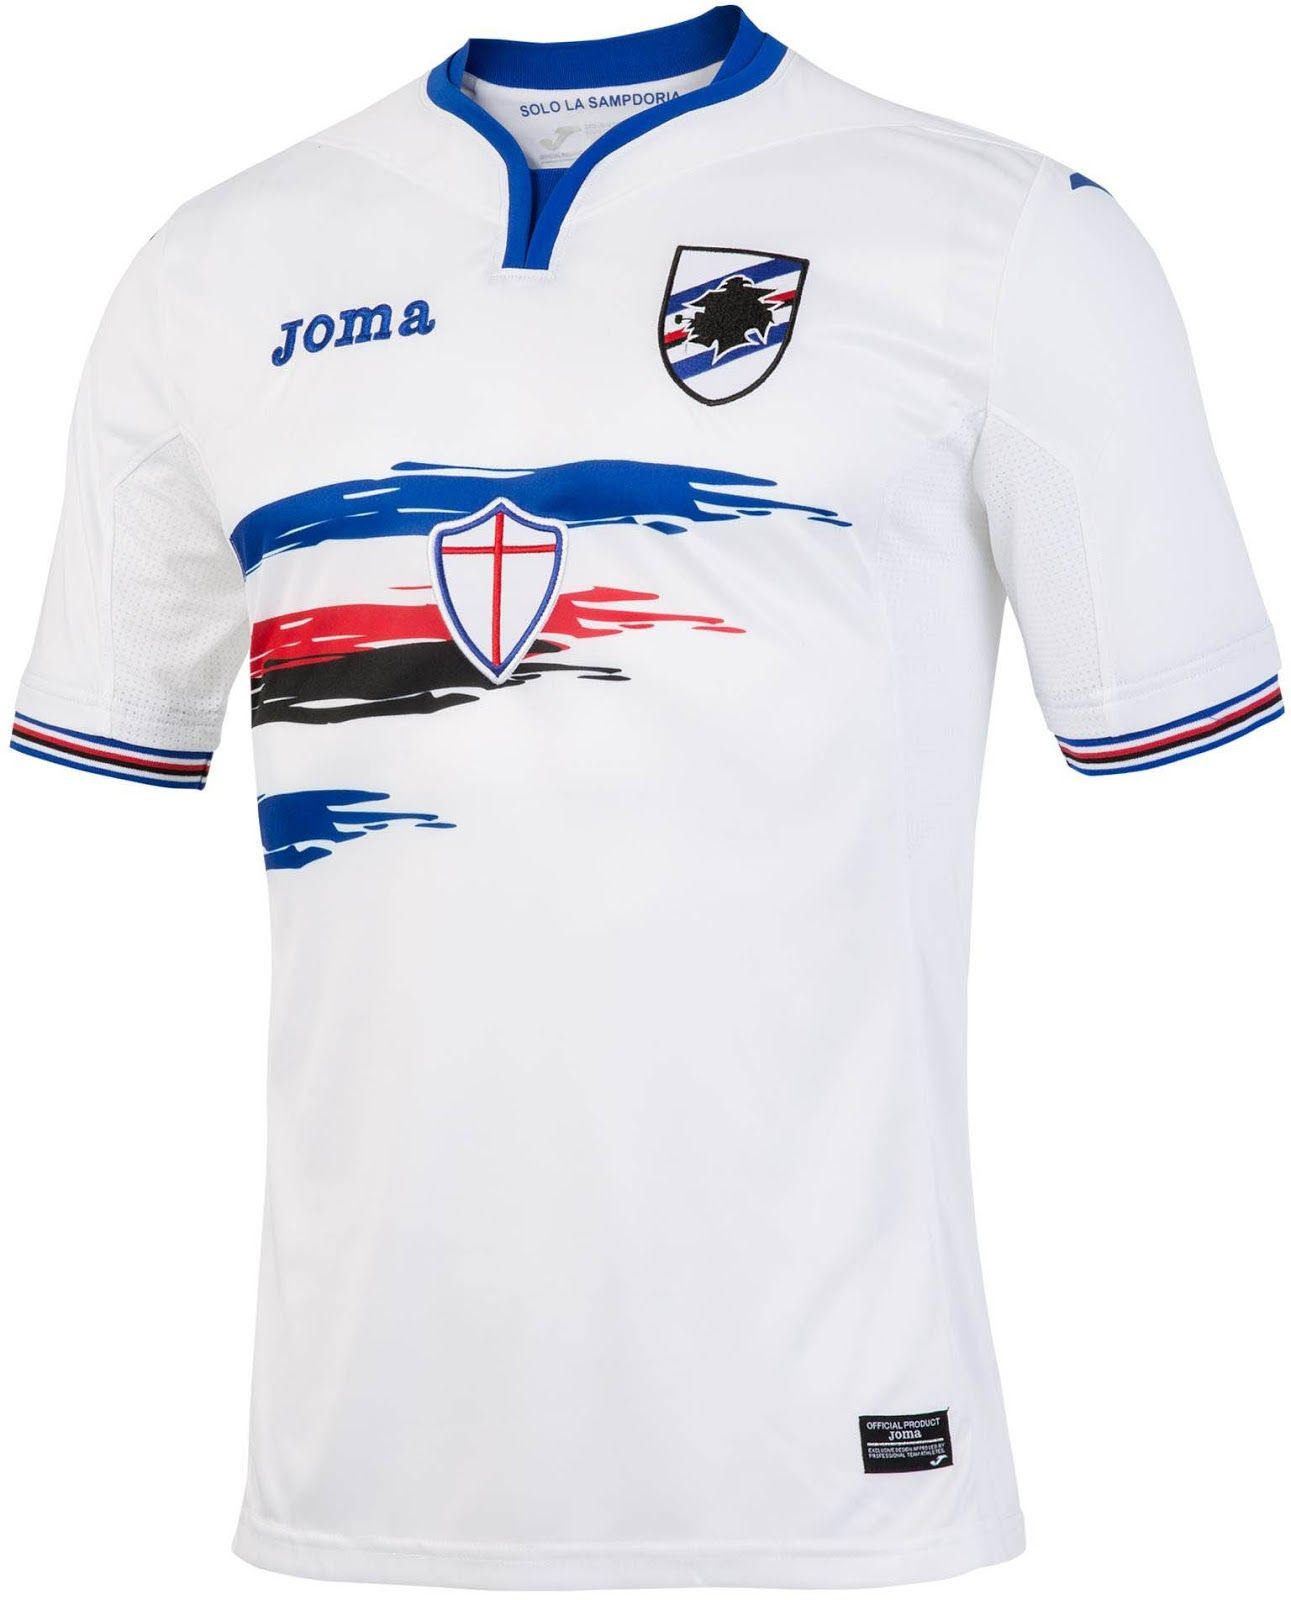 Sampdoria 16-17 Home and Away Kits Released - Footy Headlines Playeras De  Futbol 319cd50b1a4